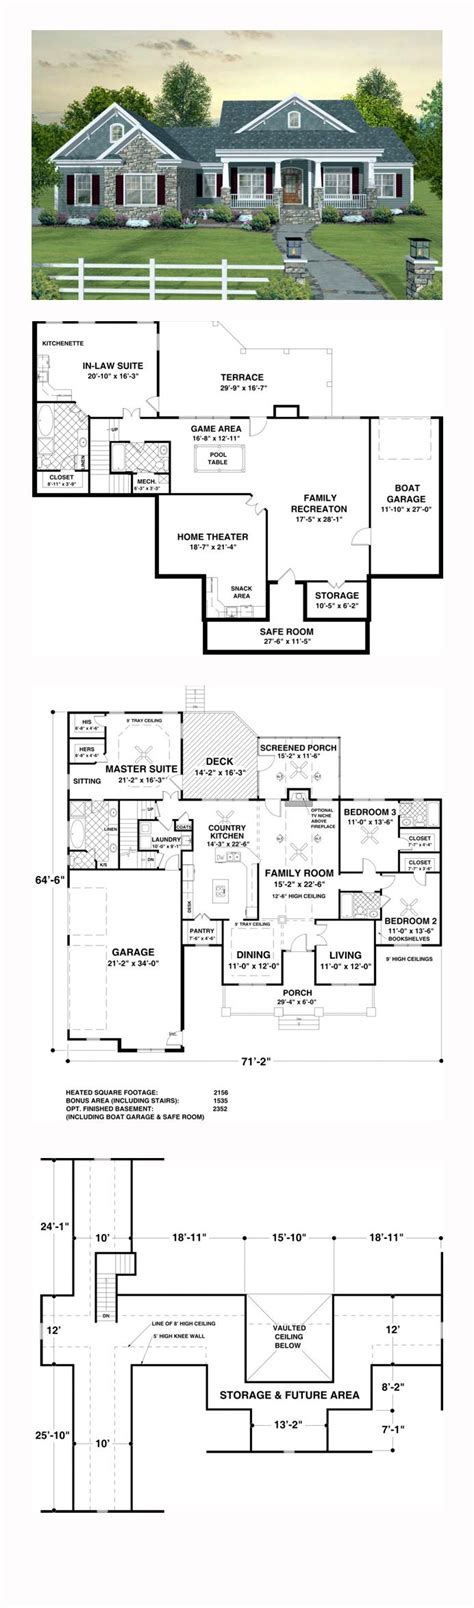 Basement Apartment Floor Plans 17 Amazing Basement Apartment Floor Plans Home Design Ideas